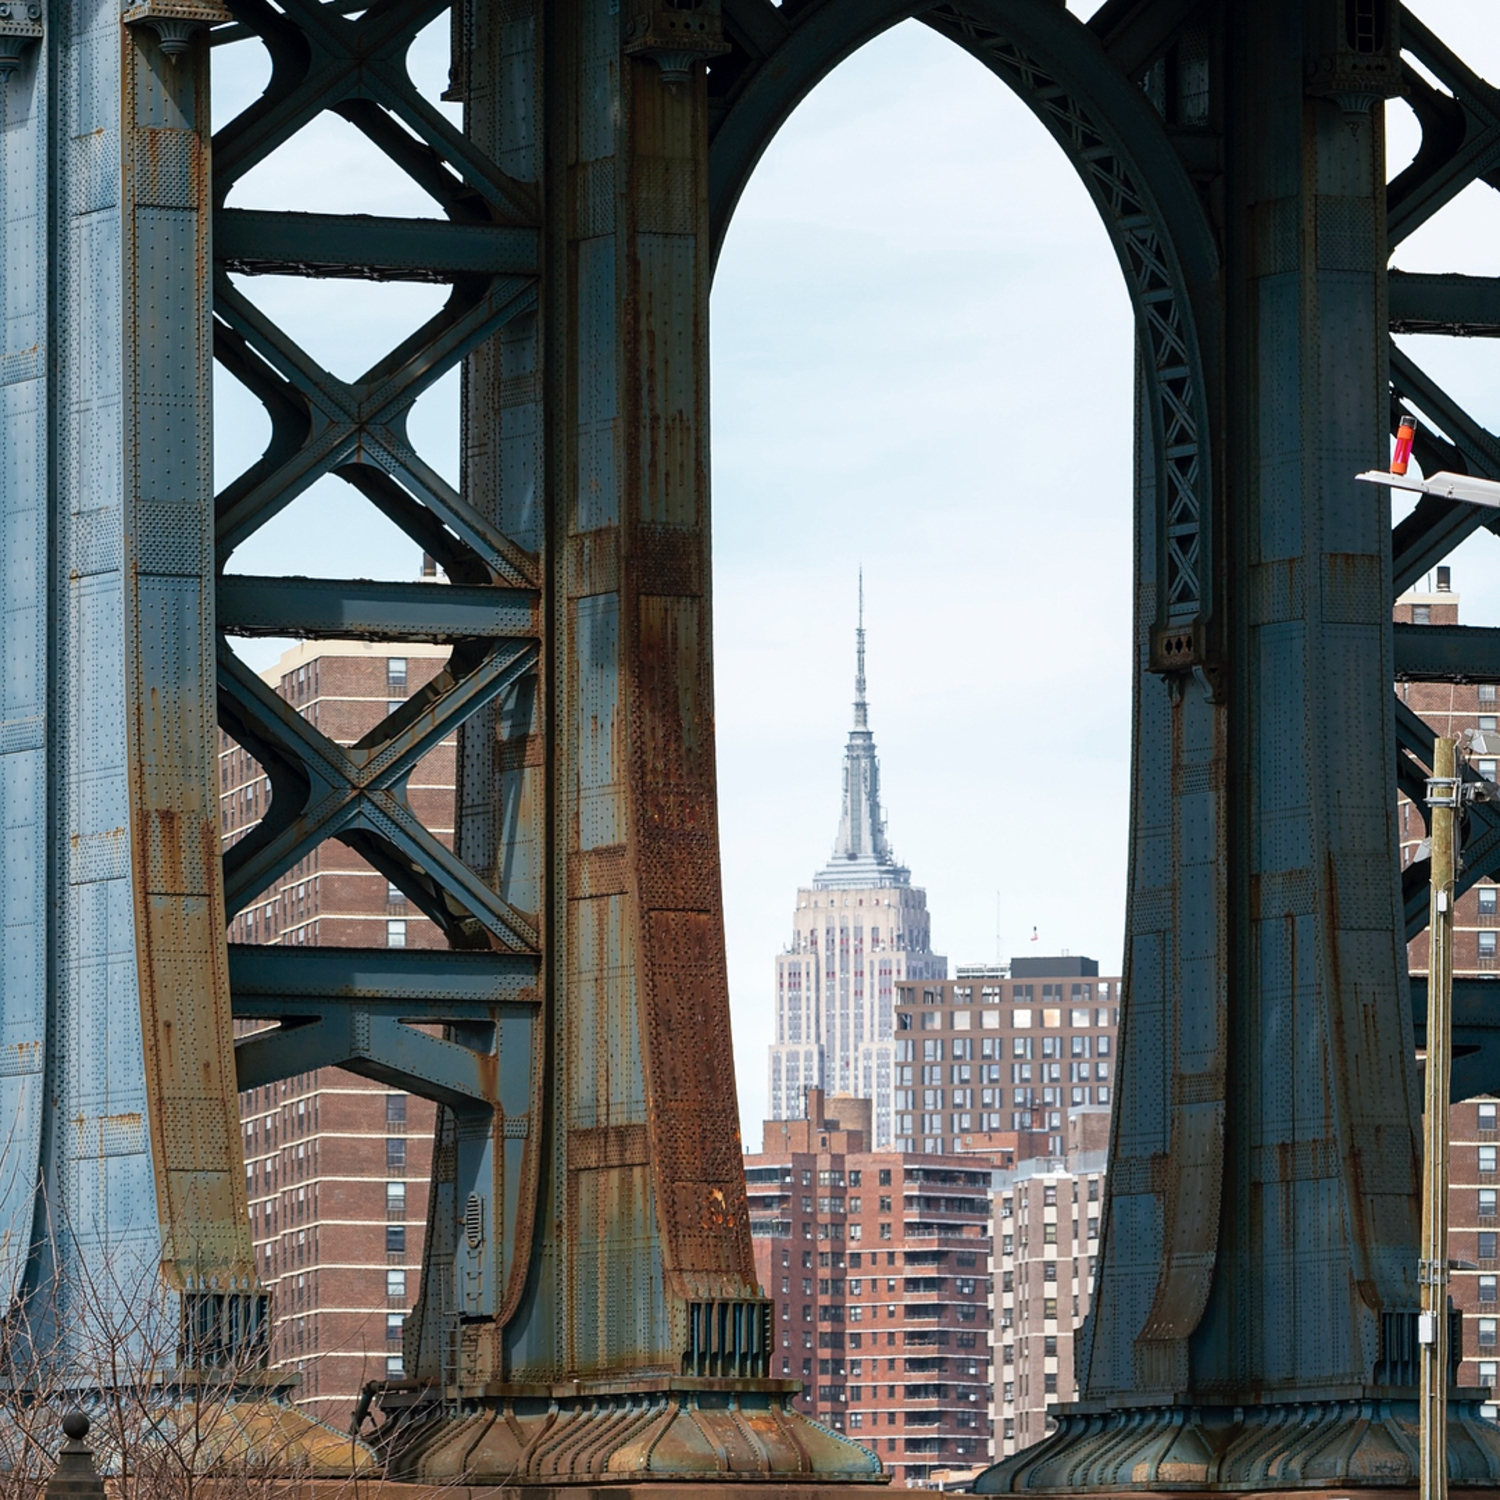 Empire State Building as seen through Manhattan Bridge from DUMBO, Brooklyn